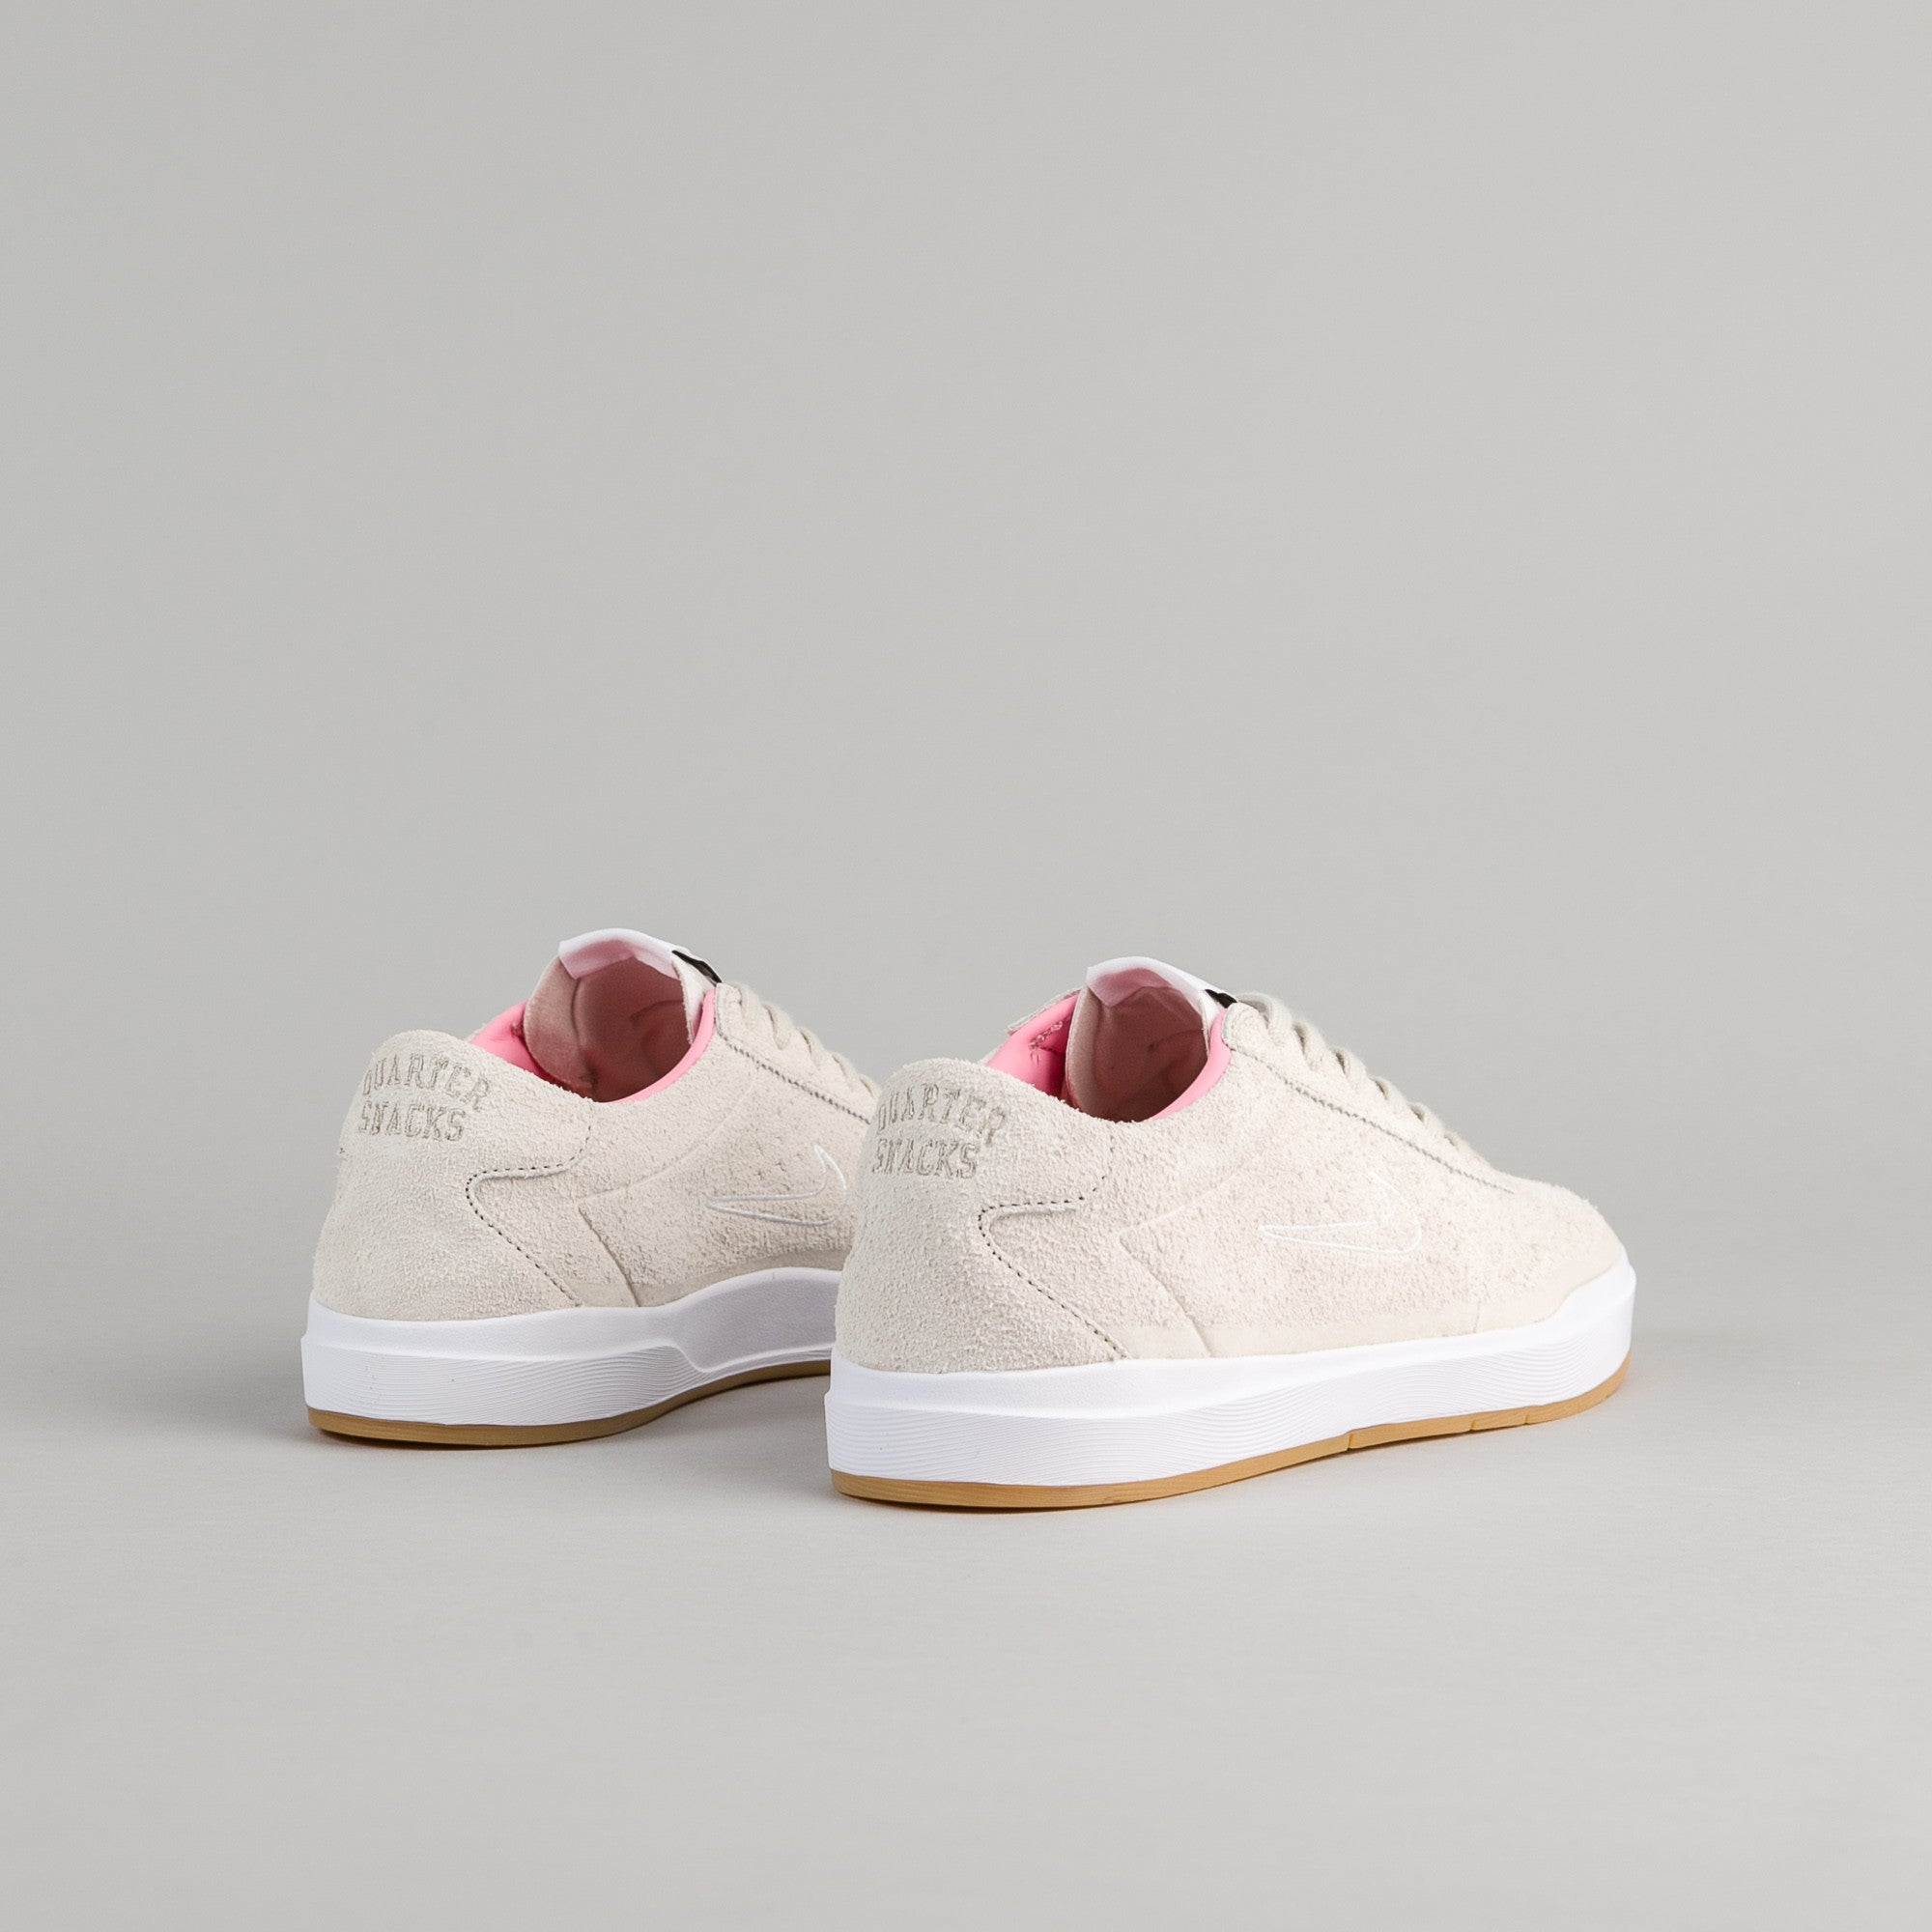 Nike SB x Quartersnacks Bruin Hyperfeel Premium Shoes - Birch / Space Pink - Black - White